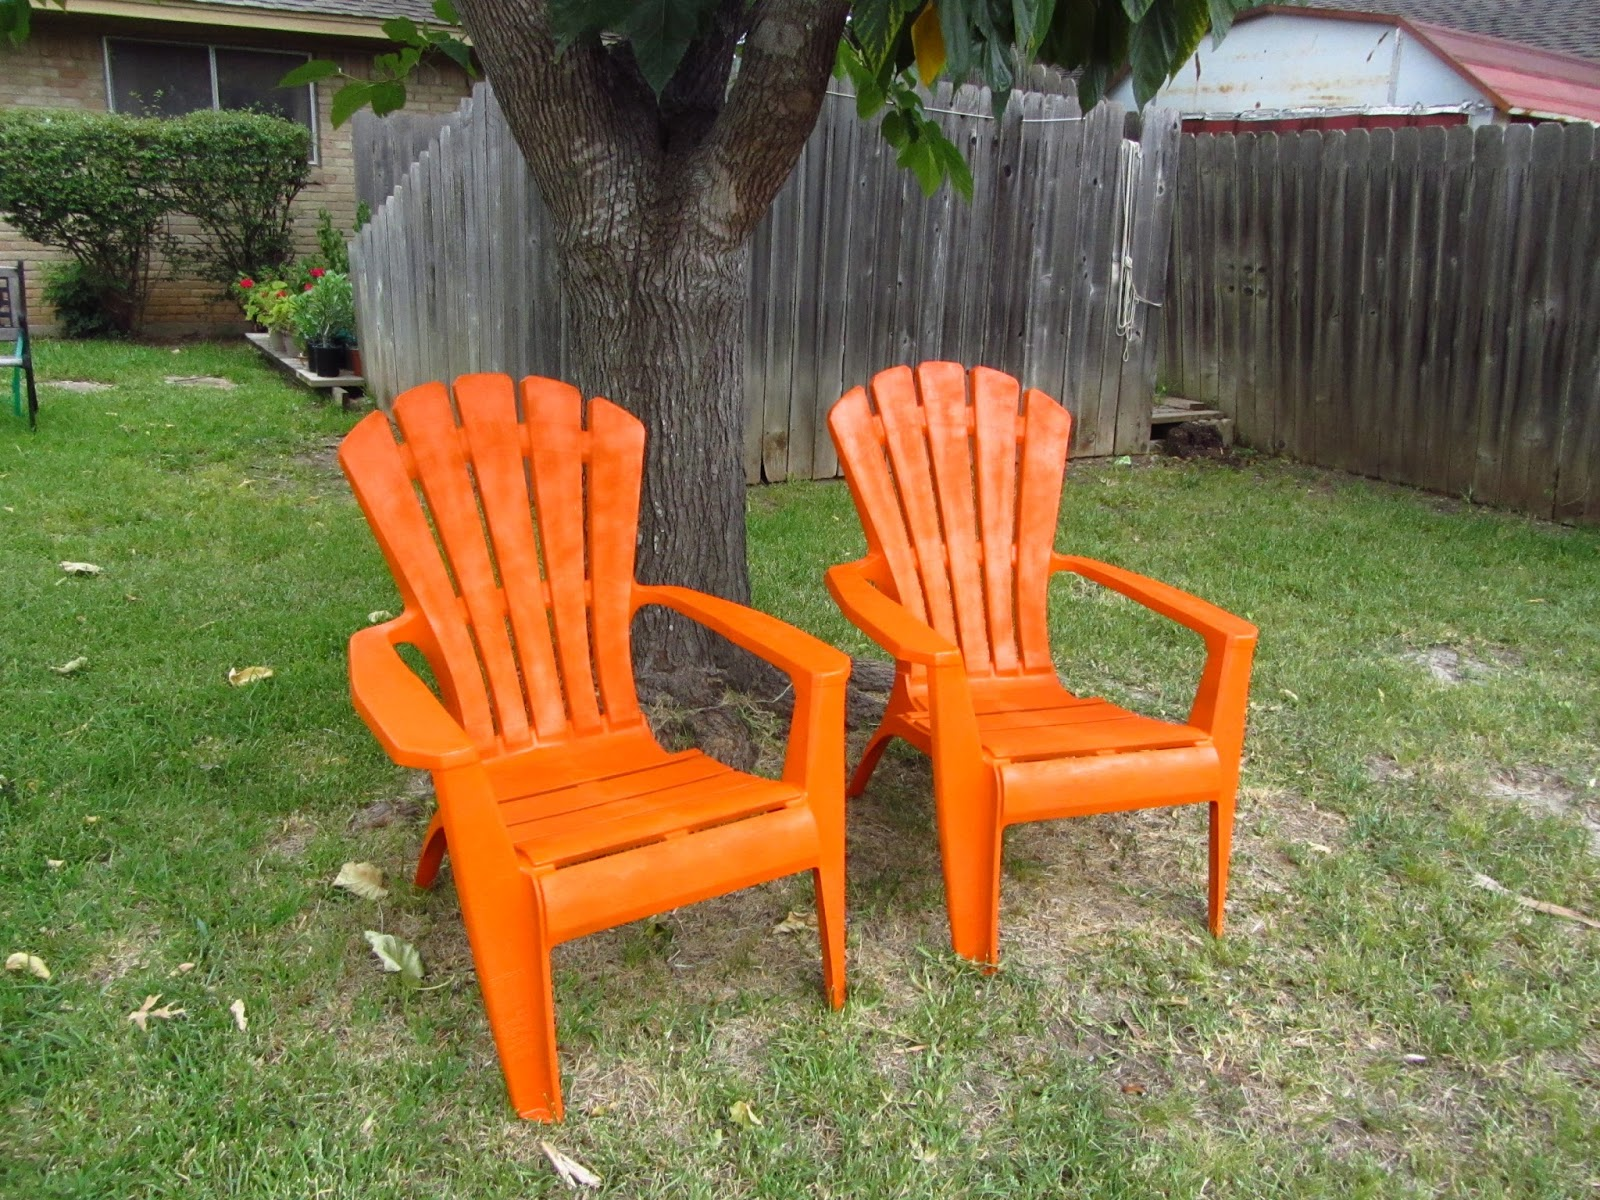 Orange Resin Adirondack Chair Dv Dolce Resin Outdoor Armchair Orange Isp047 Ora Cozydays